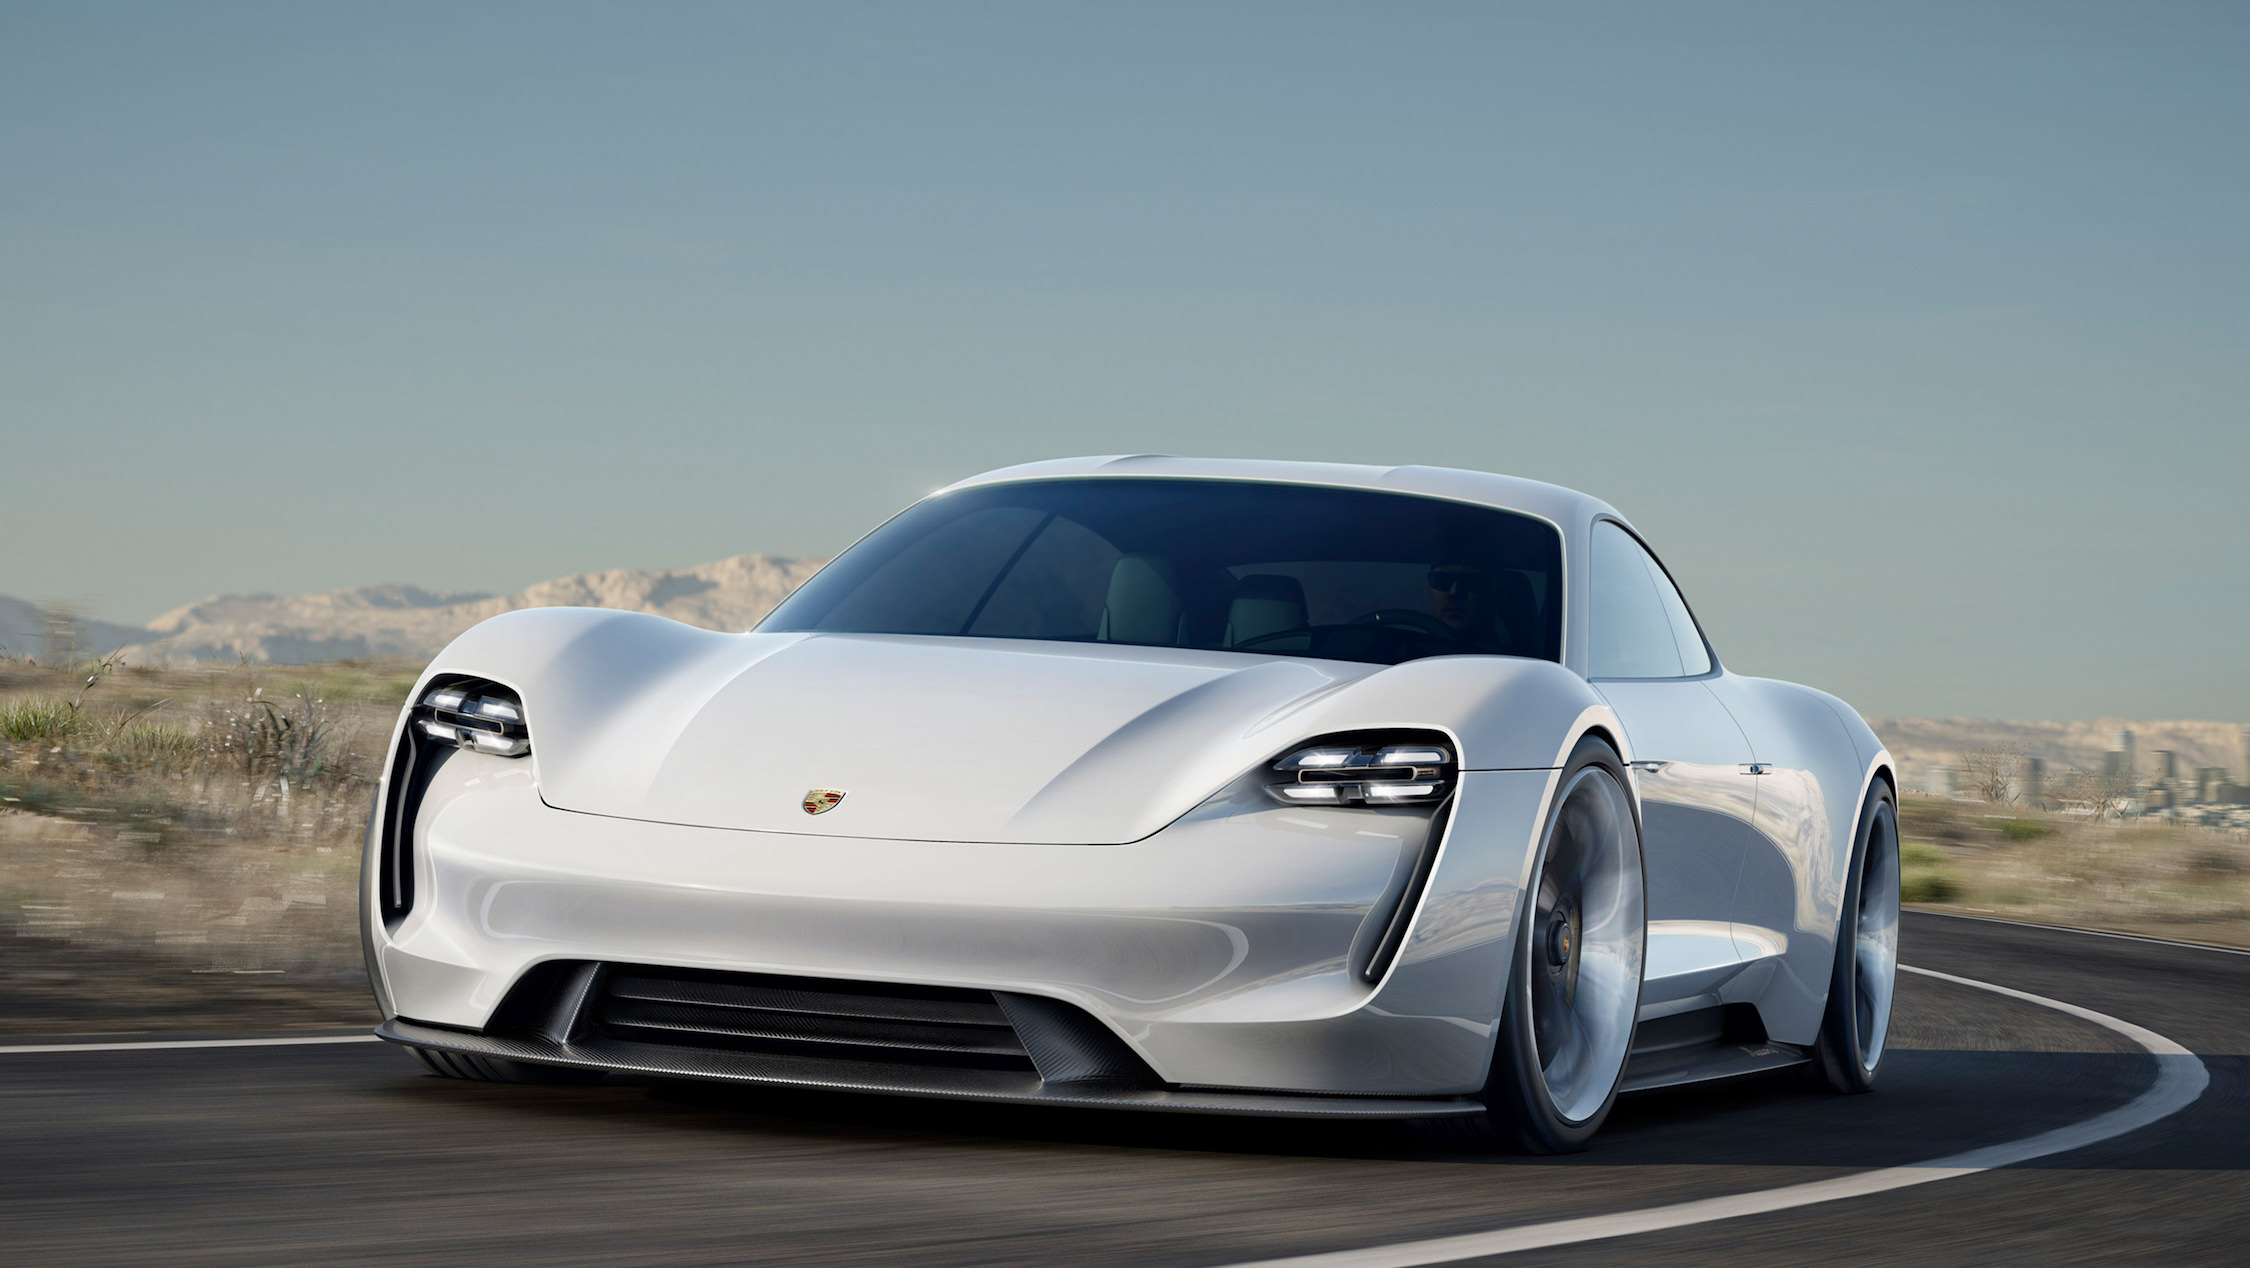 high_mission_e_concept_car_2015_porsche_ag-6